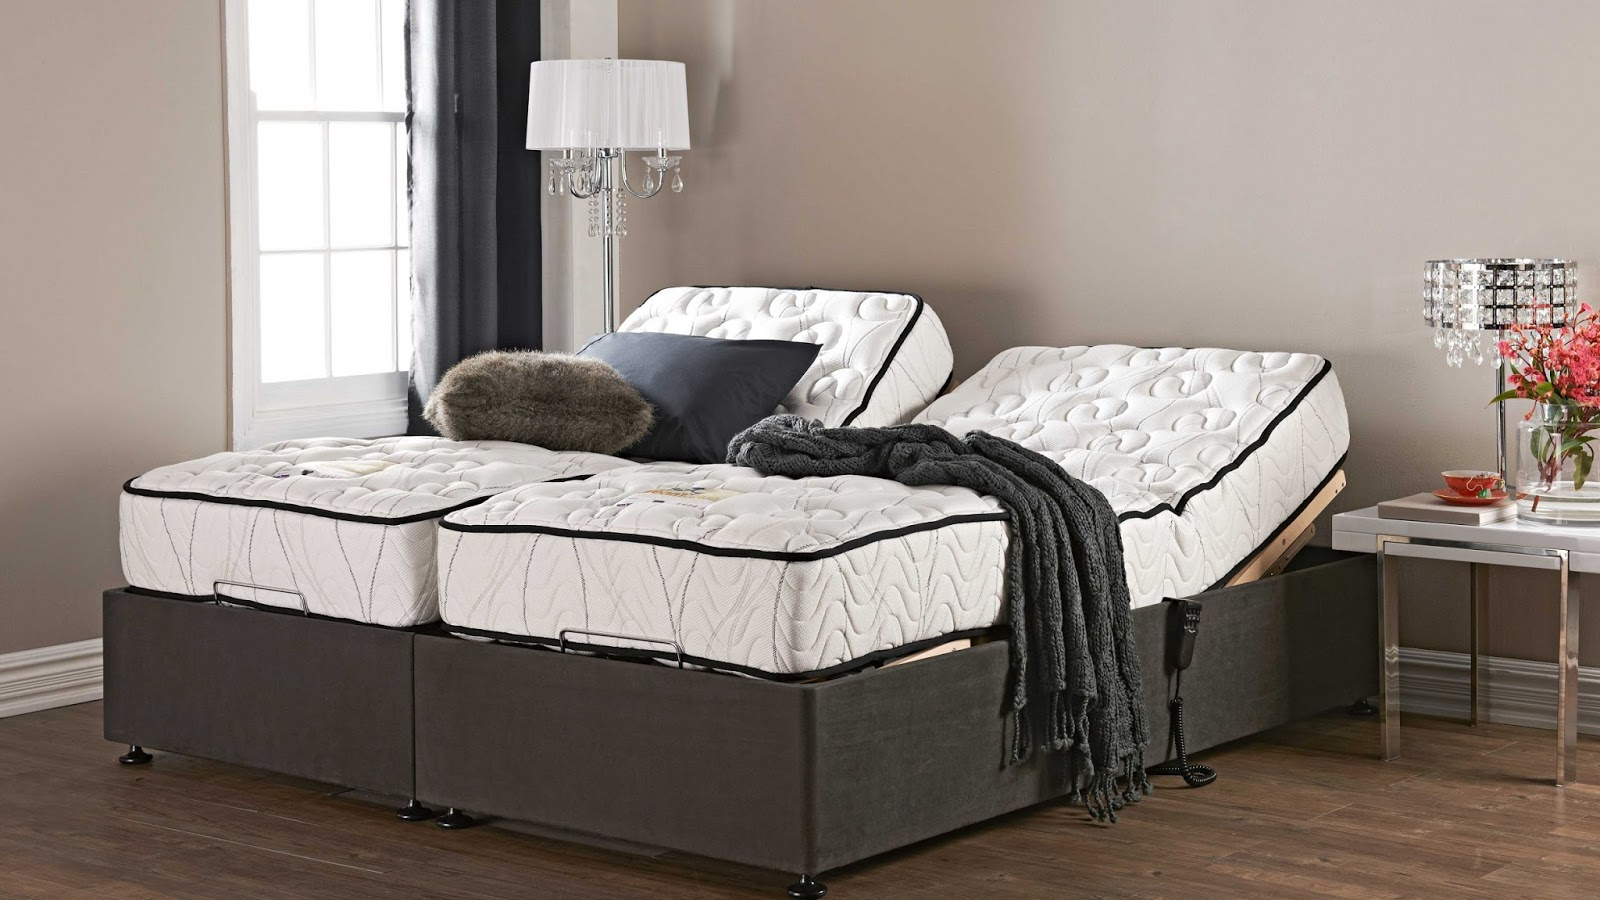 Awesome Adjustable Mattress Preferences